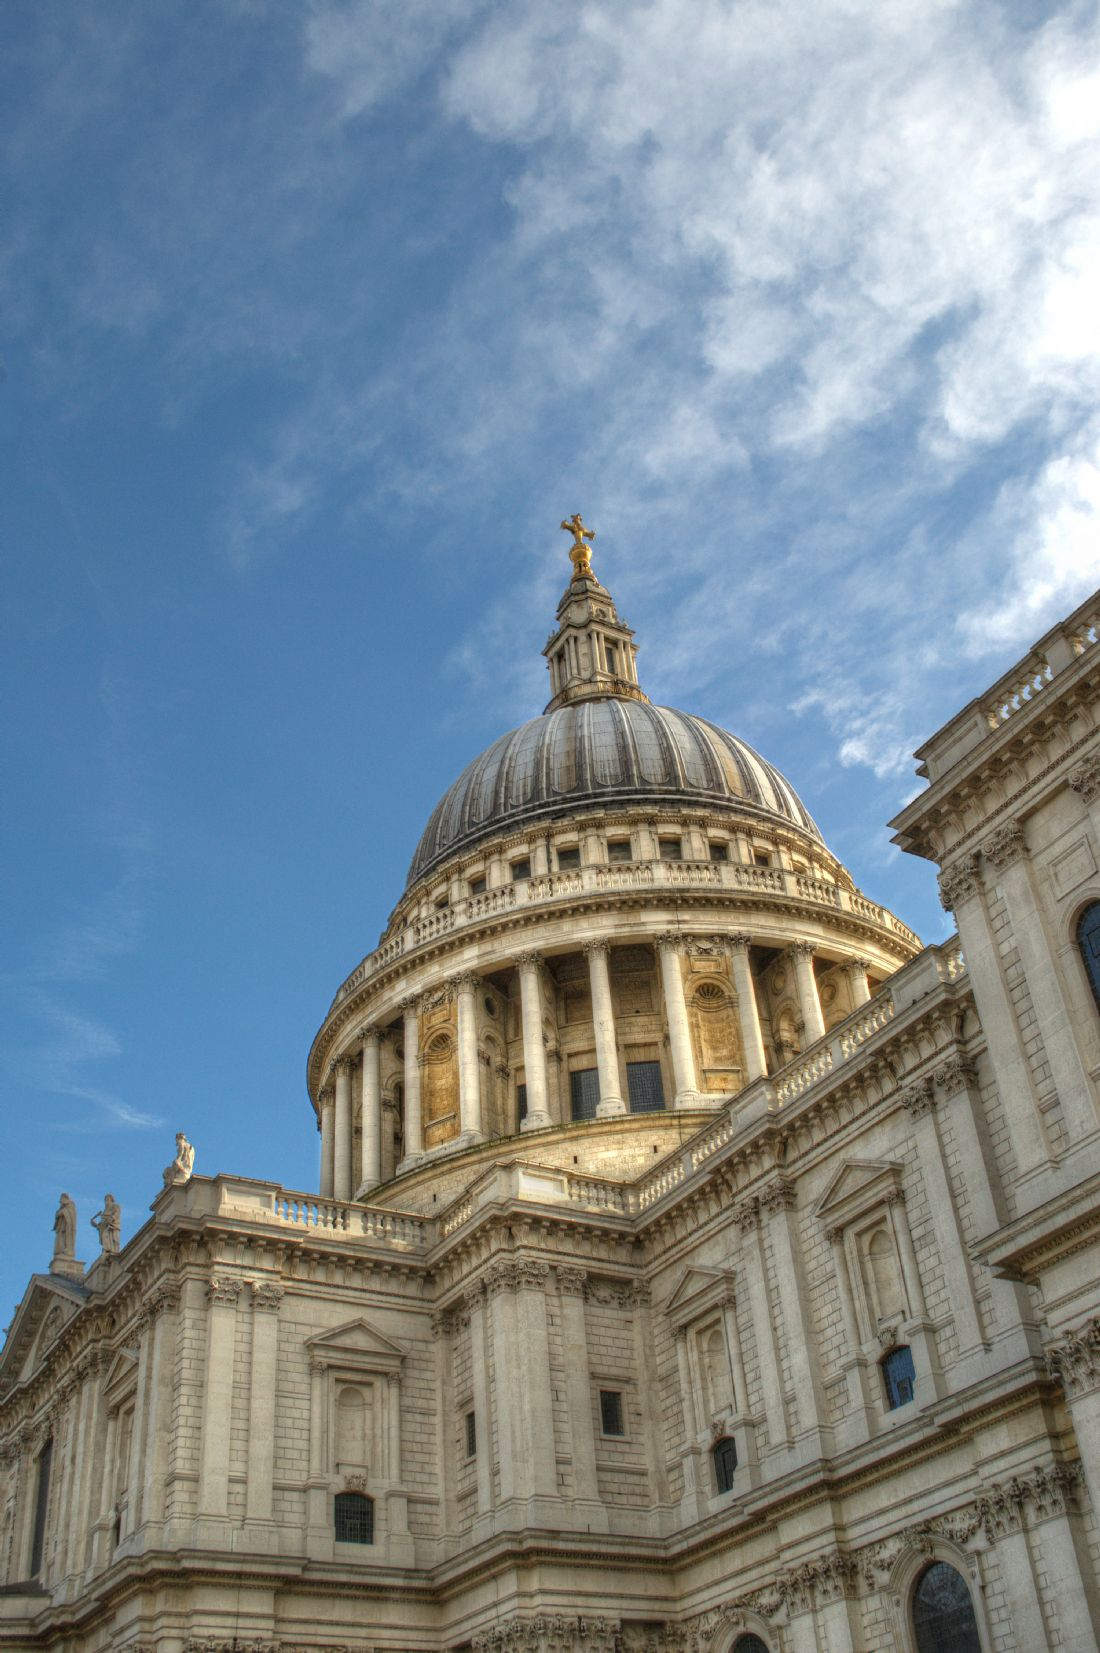 Chris Day | St Pauls Cathedral Points away towards the Heavens